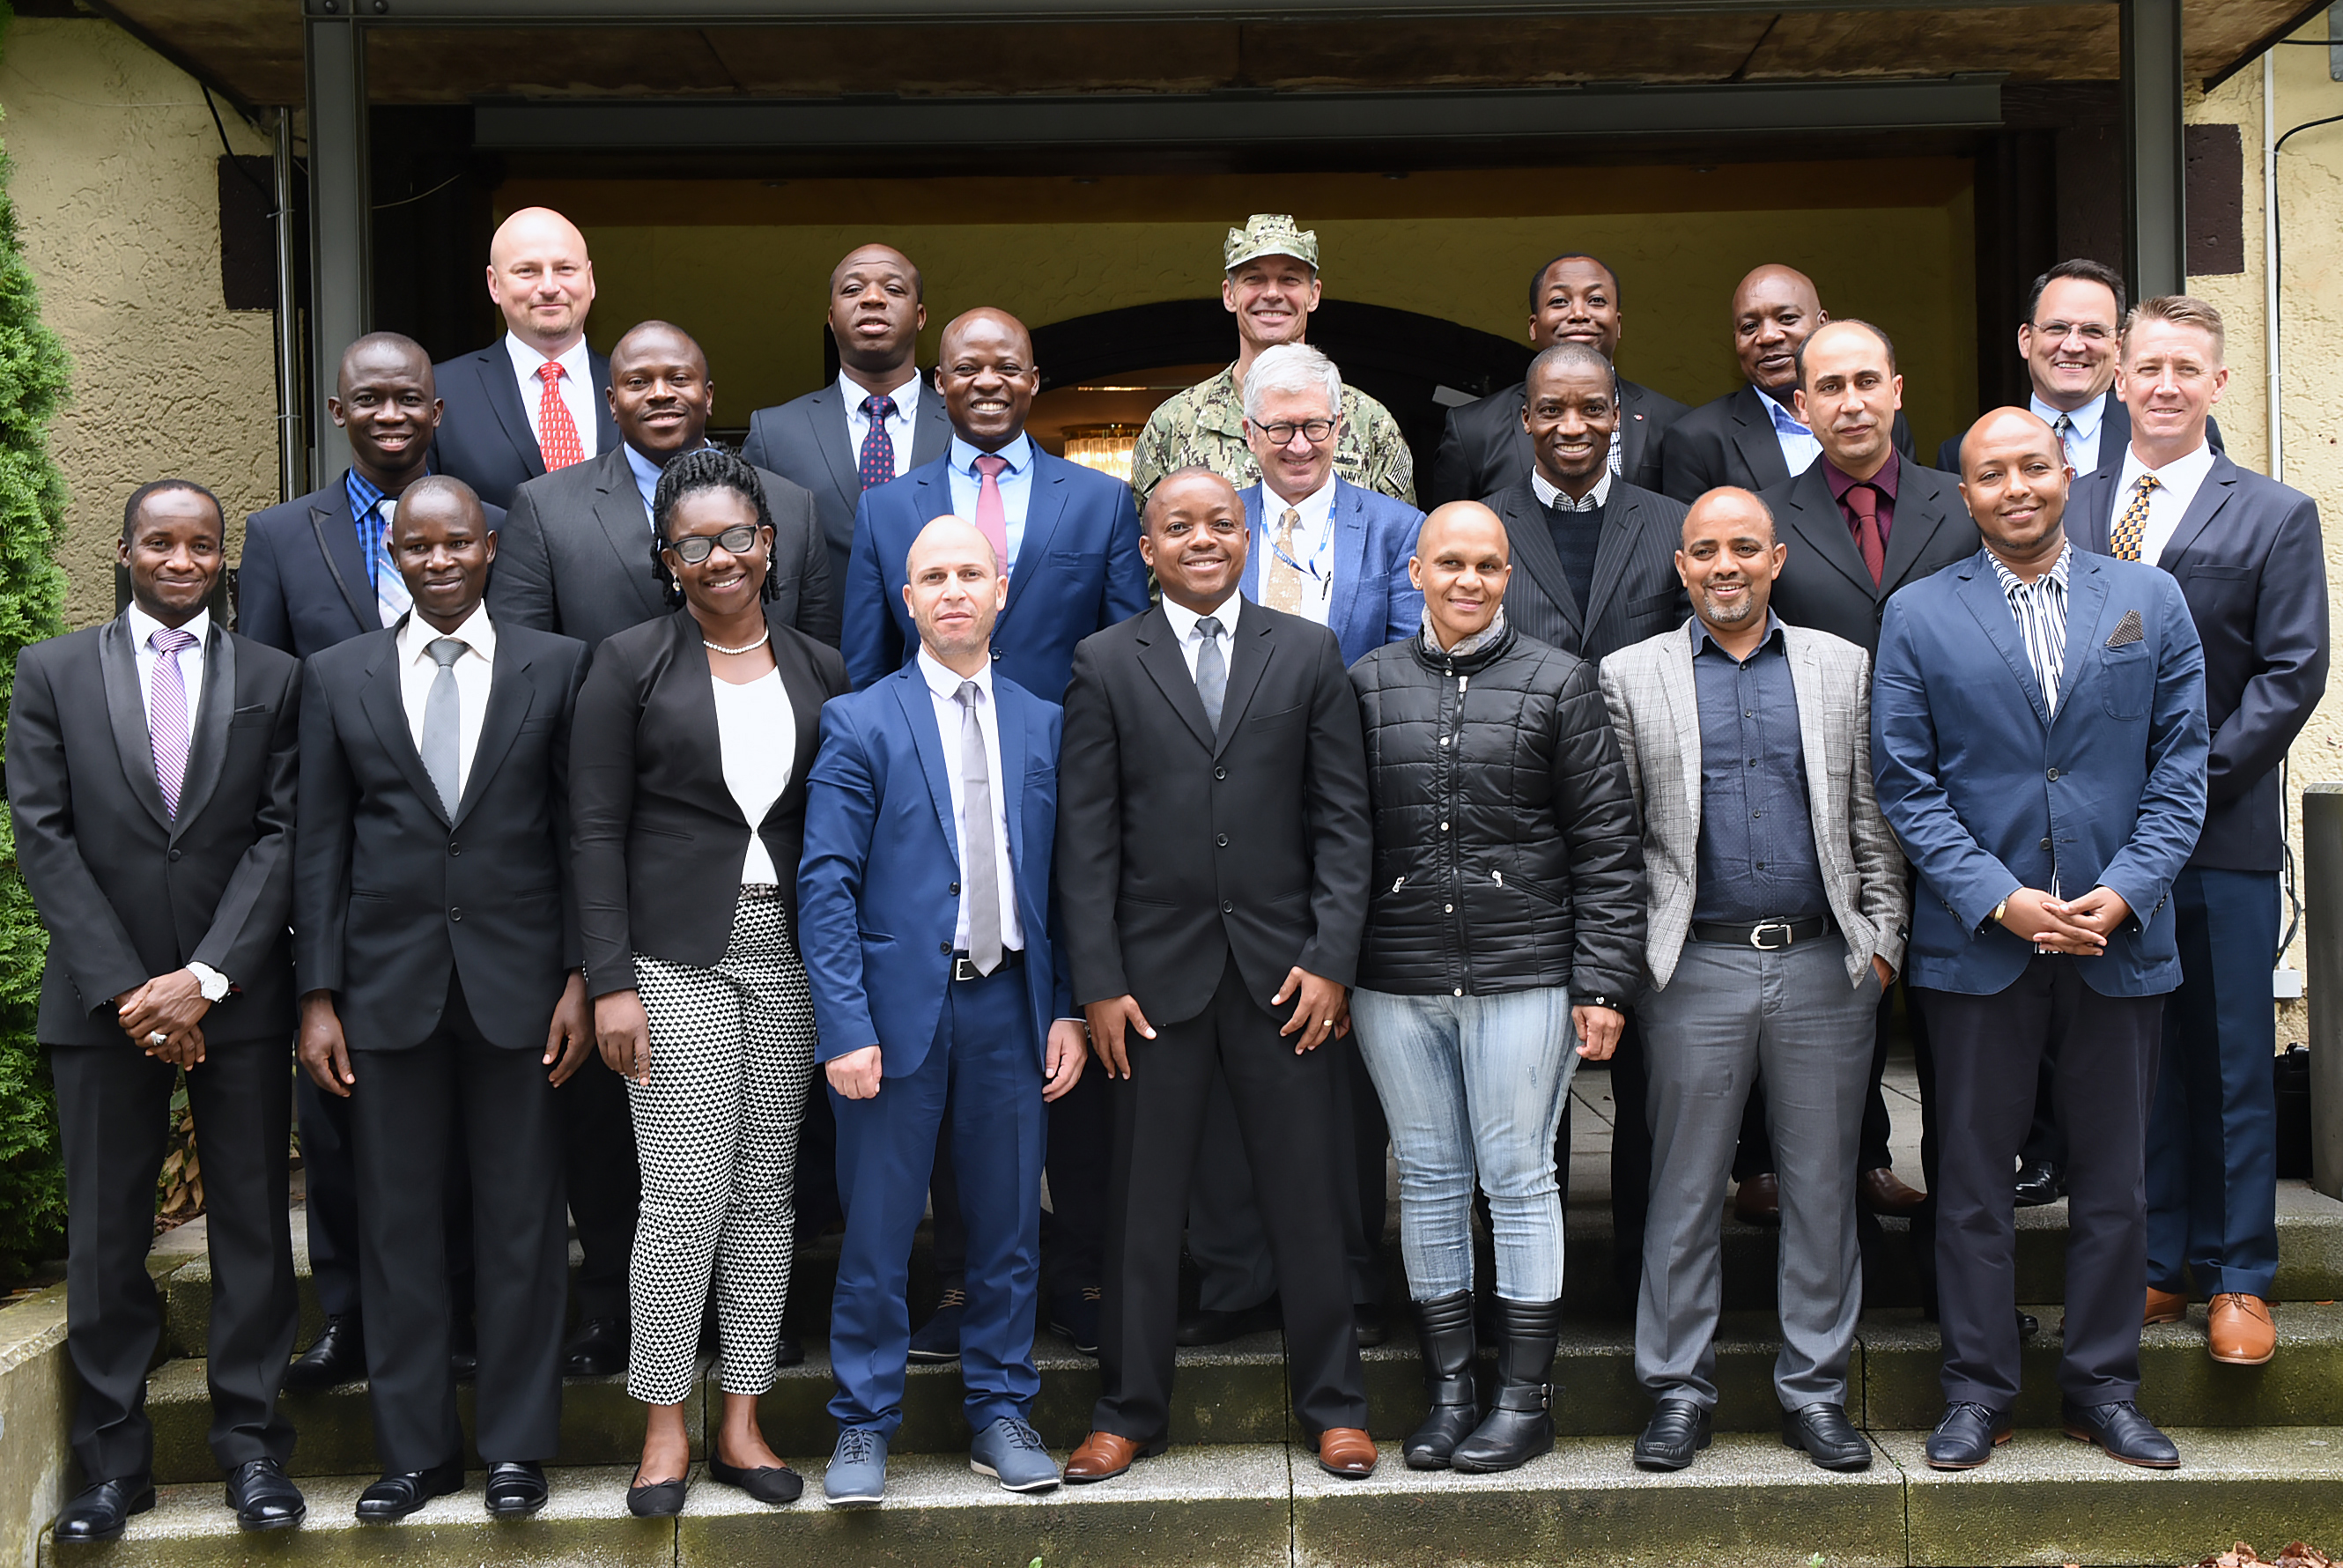 STUTTGART, Germany (July 26, 2017) – Sixteen military and civilian leaders from 13 African countries met with AFRICOM officials to discuss U.S. military involvement on the African continent during a visit to the U.S. Africa Command in Stuttgart July 26. This field trip was part of the Program on Terrorism and Security Studies held at the George C. Marshall European Center for Security Studies in Garmisch-Partenkirchen, Germany. (Marshall Center photo by Christine June)